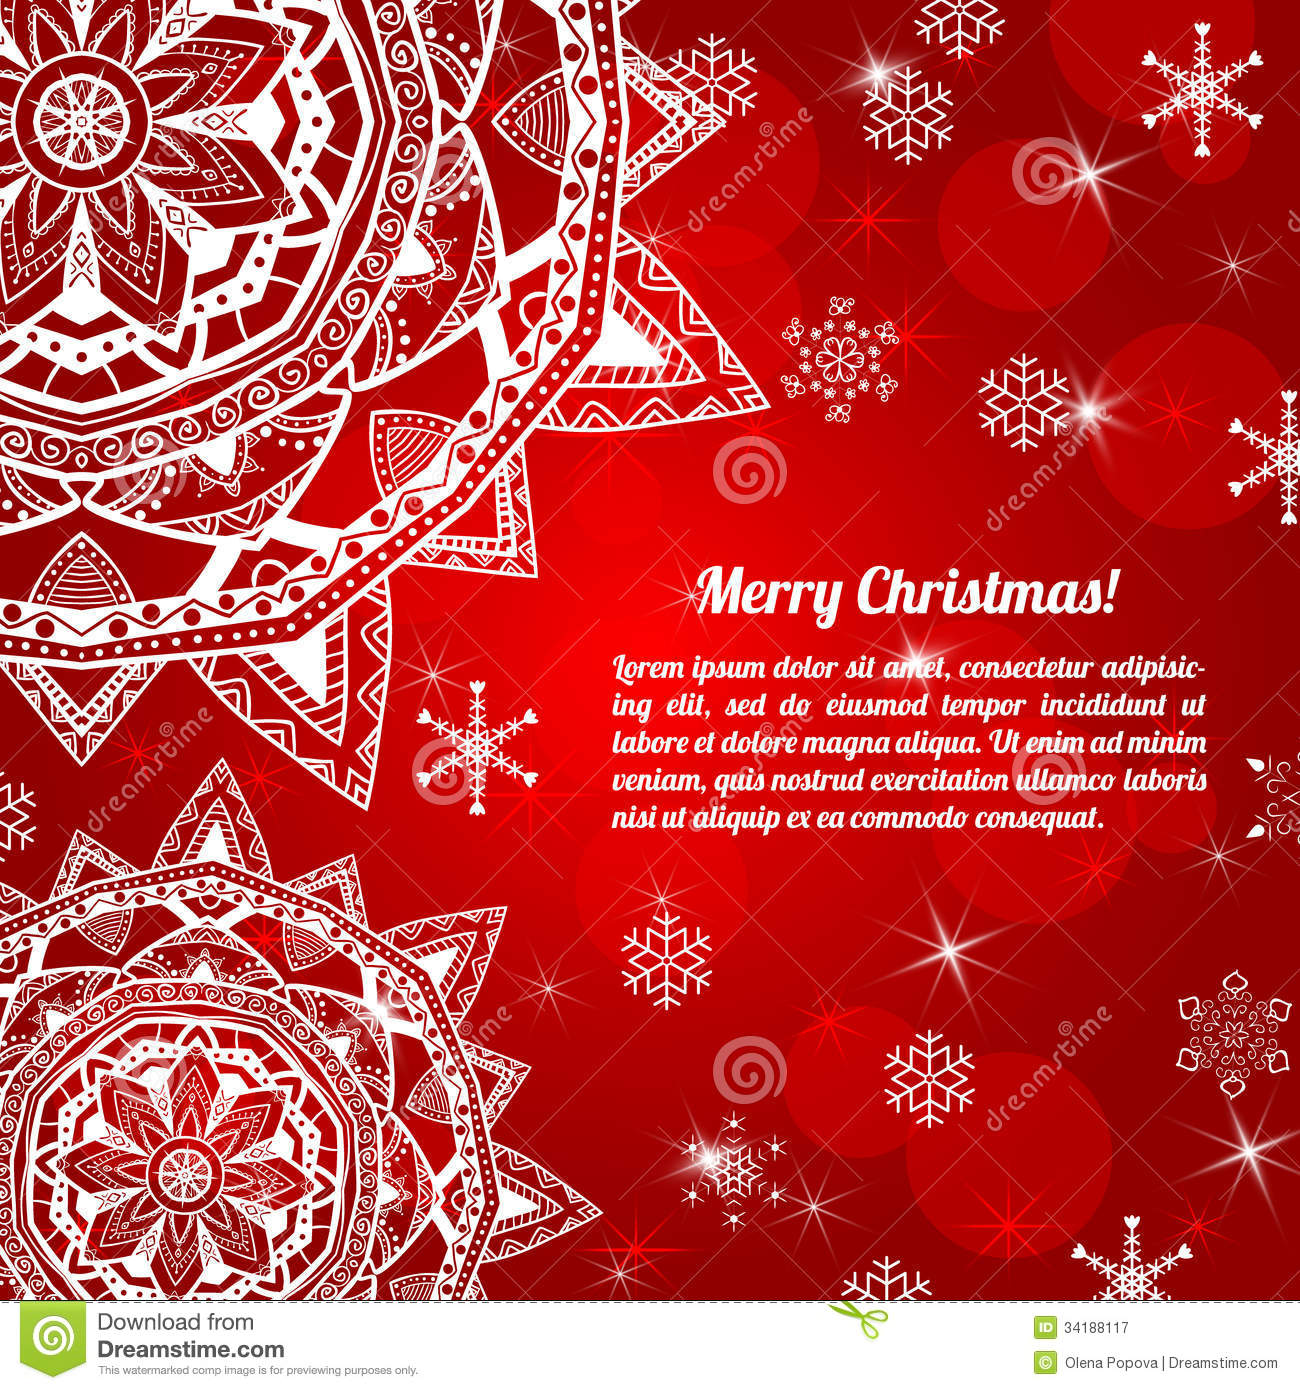 Invitation Christmas Card With Abstract Snowflakes Royalty Free – Christmas Invitation Cards